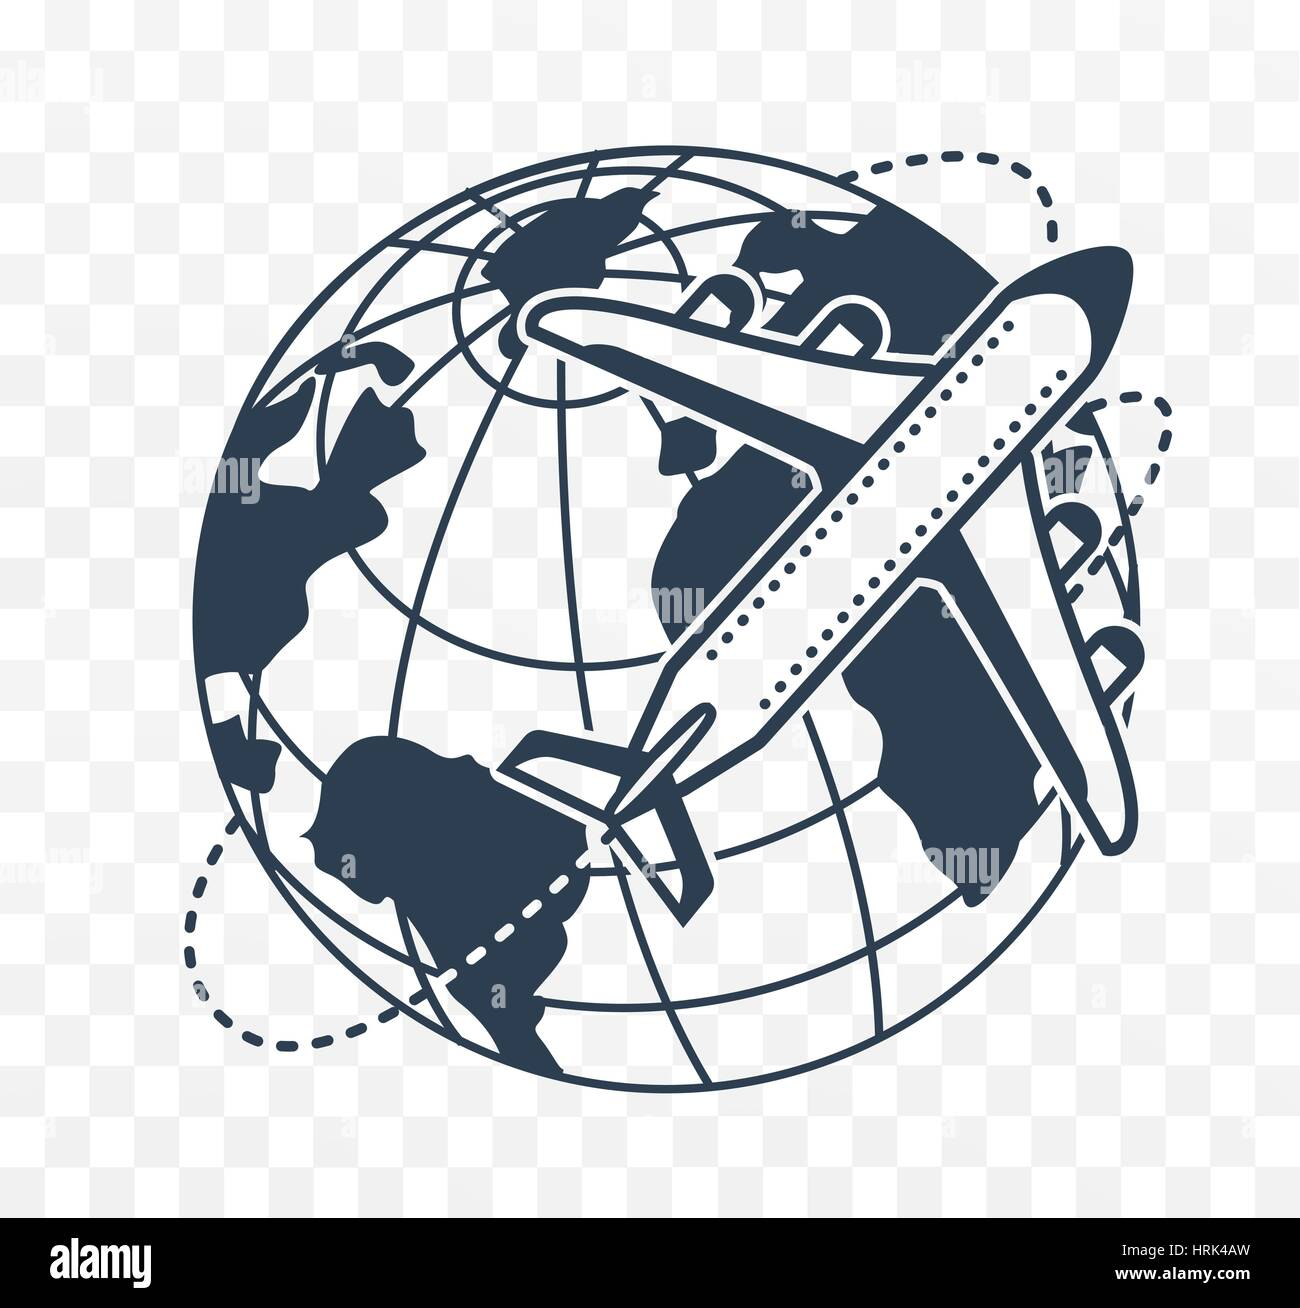 Icon silhouette of an airplane on the background earth - Stock Image